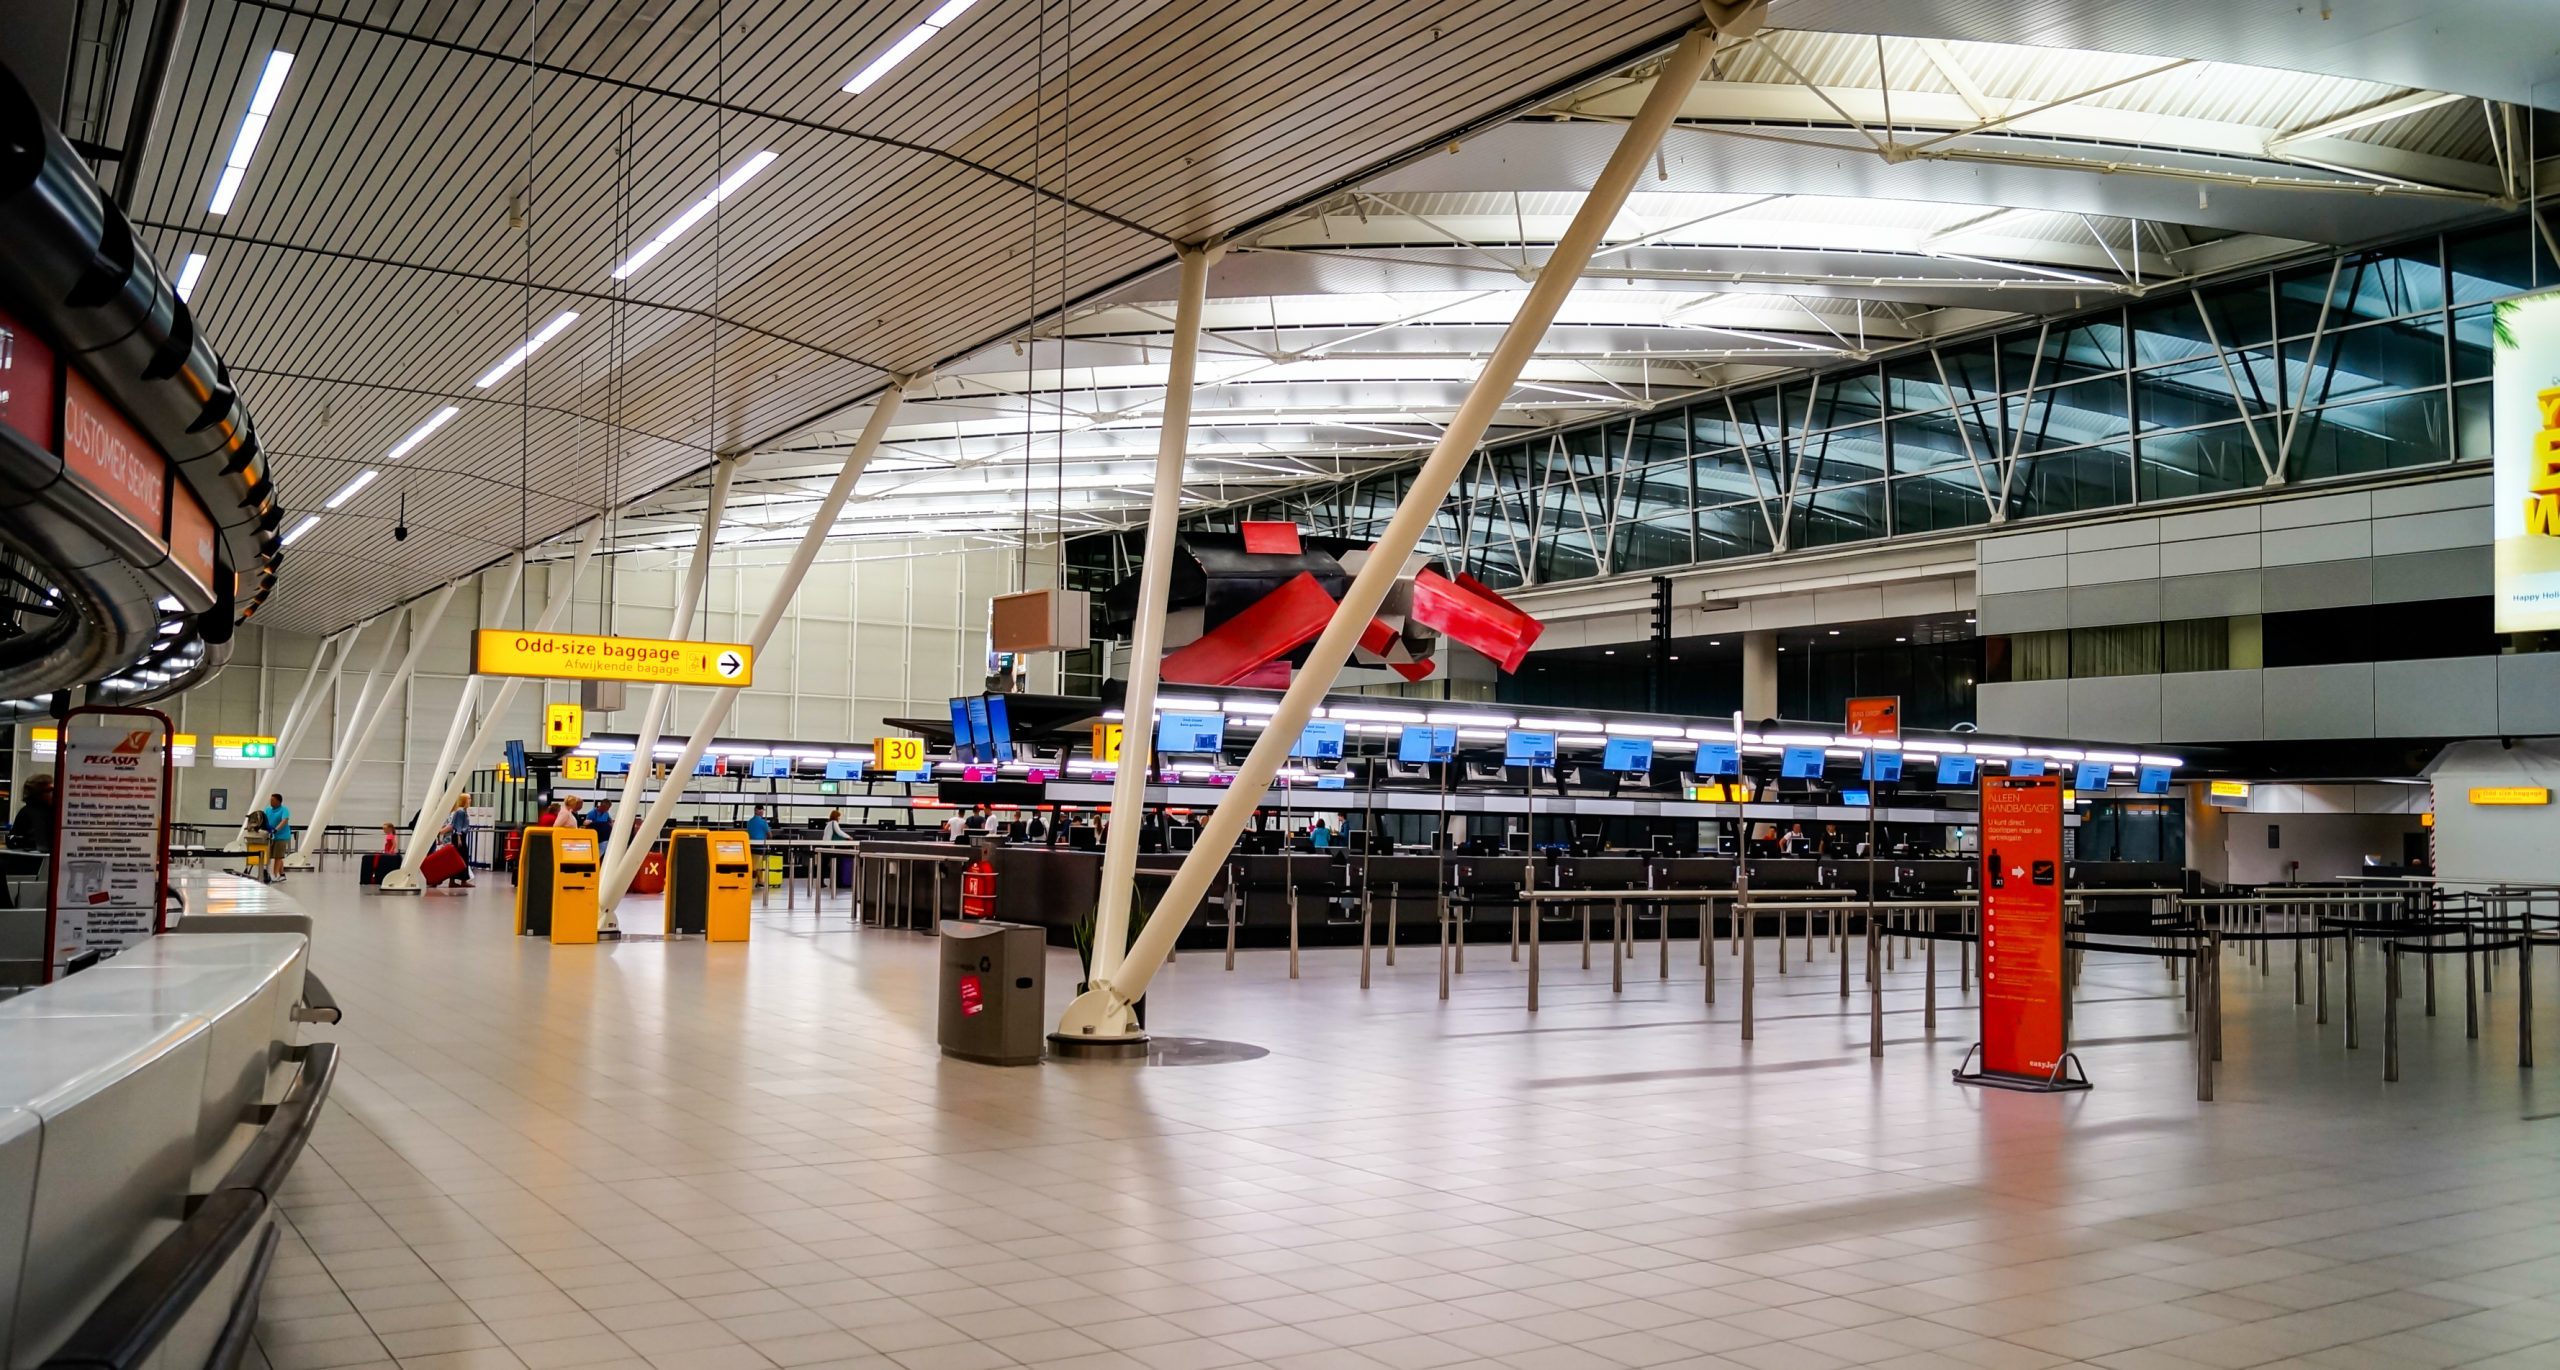 July 18, 2014: Schiphol Airport in Amsterdam, Departures Terminal 3, night hours. The major area of the terminal was empty. There was neither a spokesperson from the Malaysia Airlines nor from the Schiphol Airport.